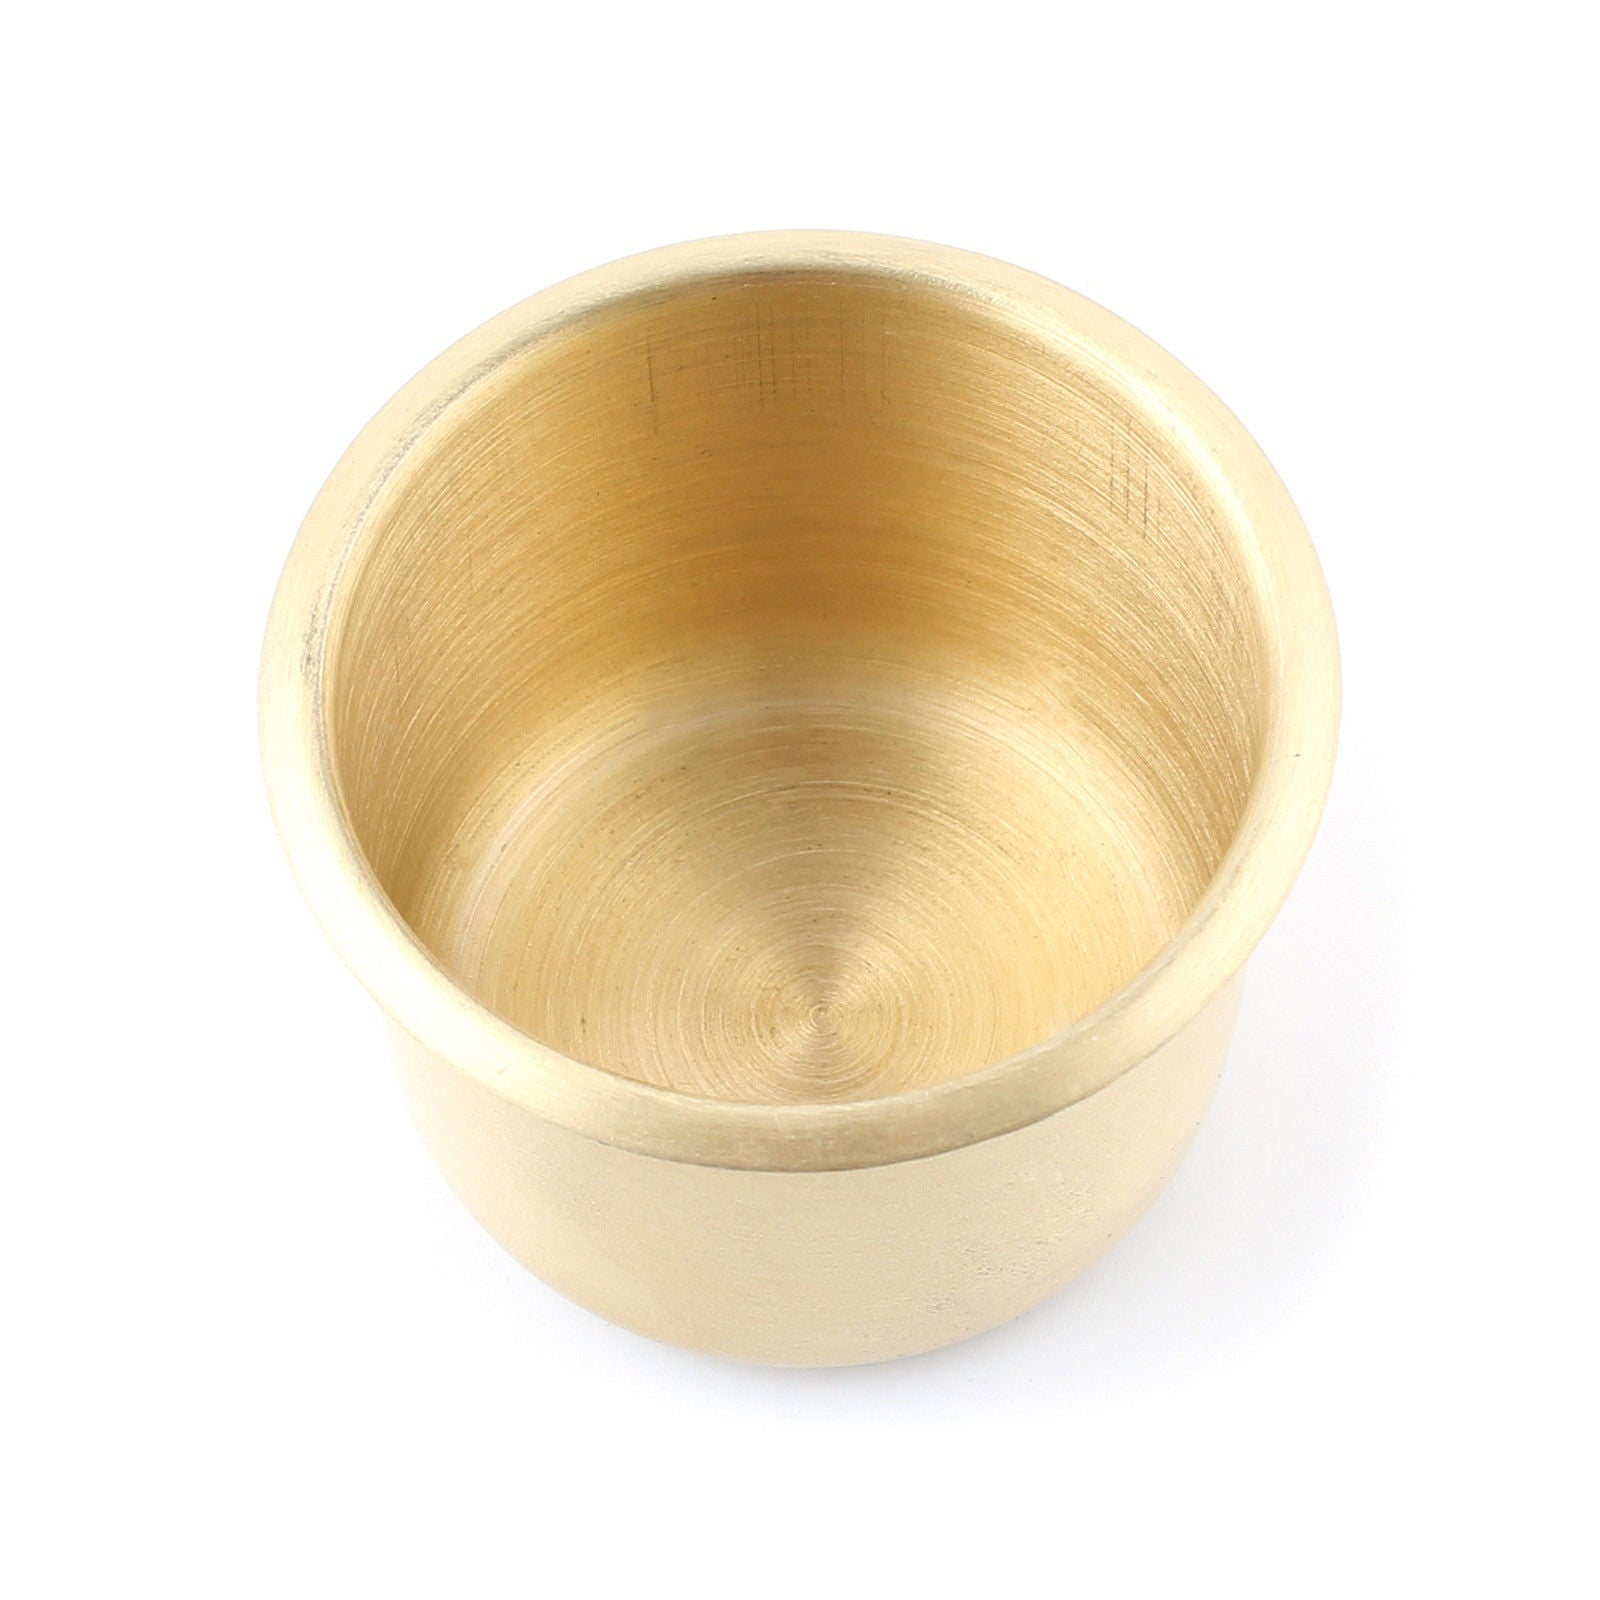 10 x Brass Poker Table Cup Holder Jumbo - IDS Online Shop